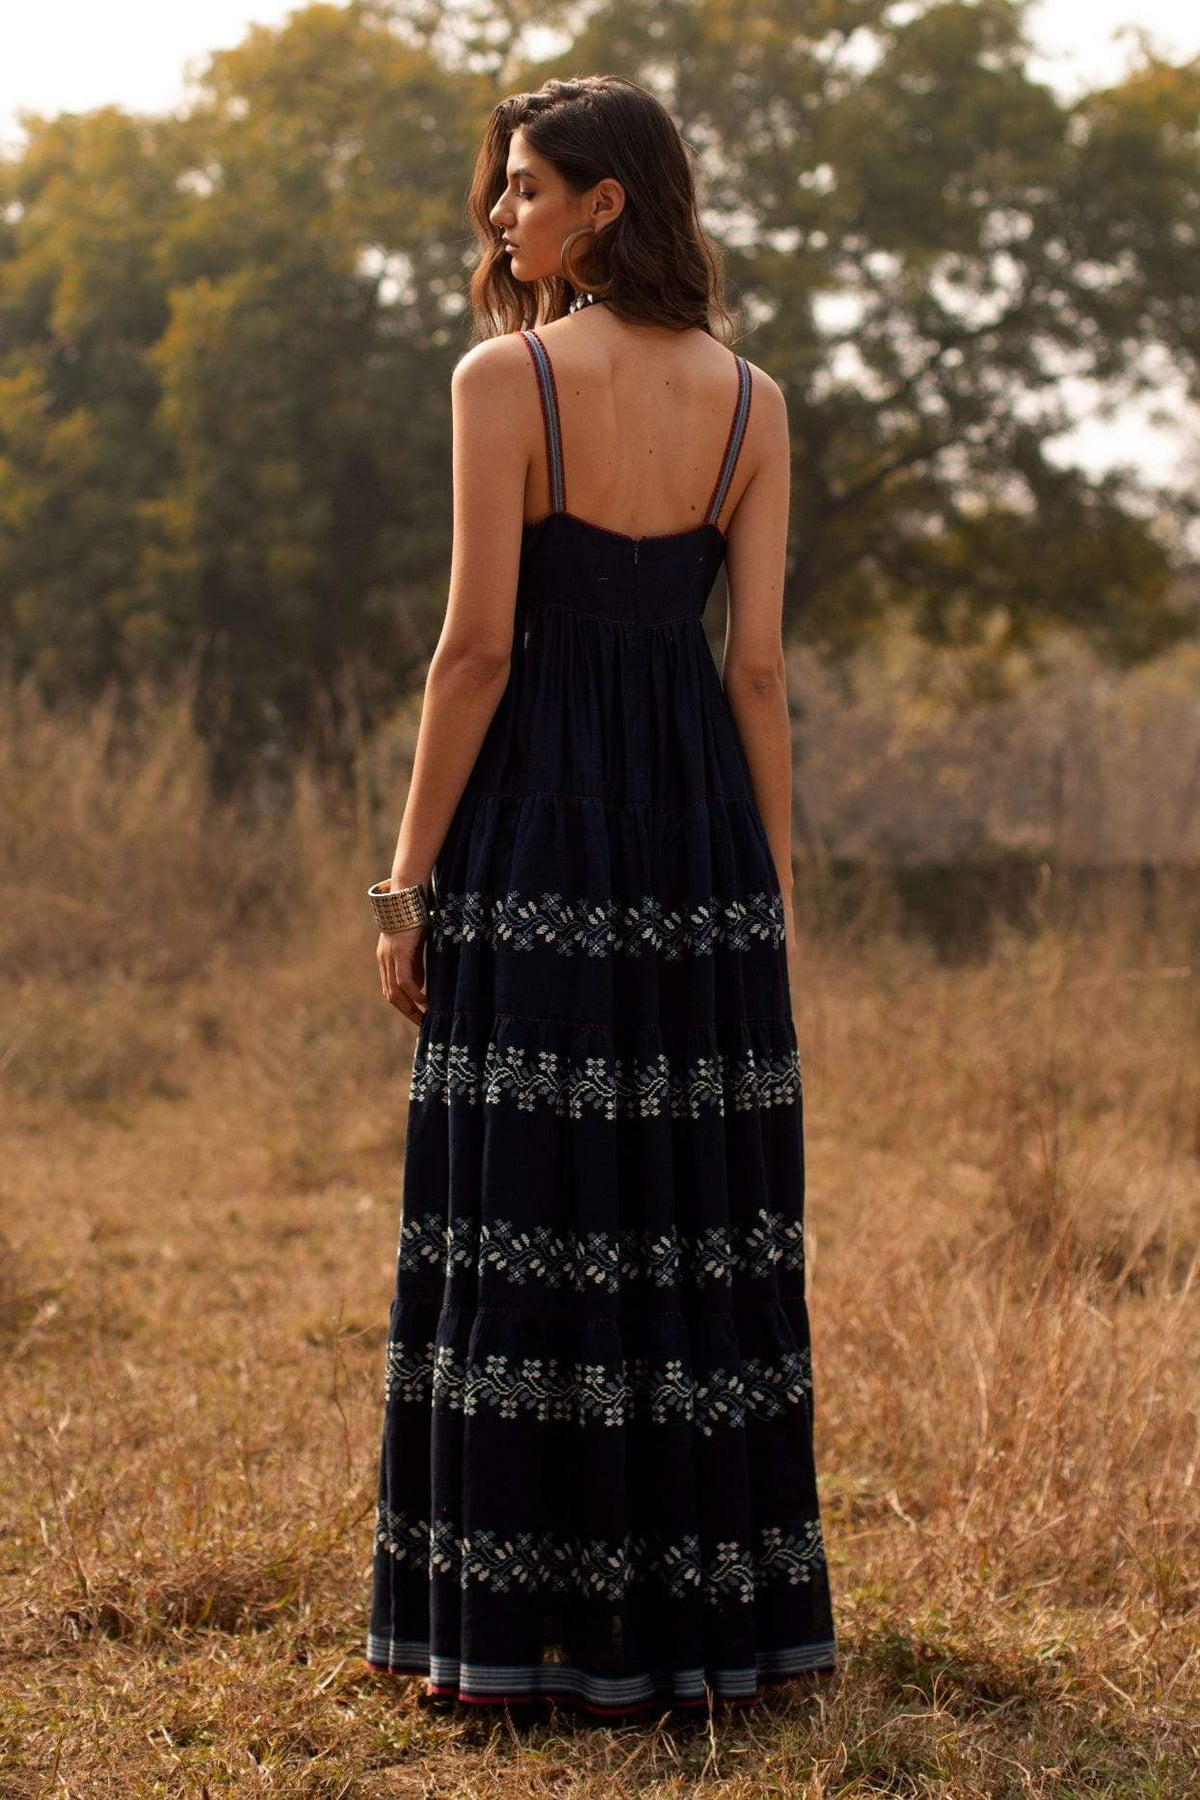 Payal Pratap Dresses Navy dianne strappy maxi